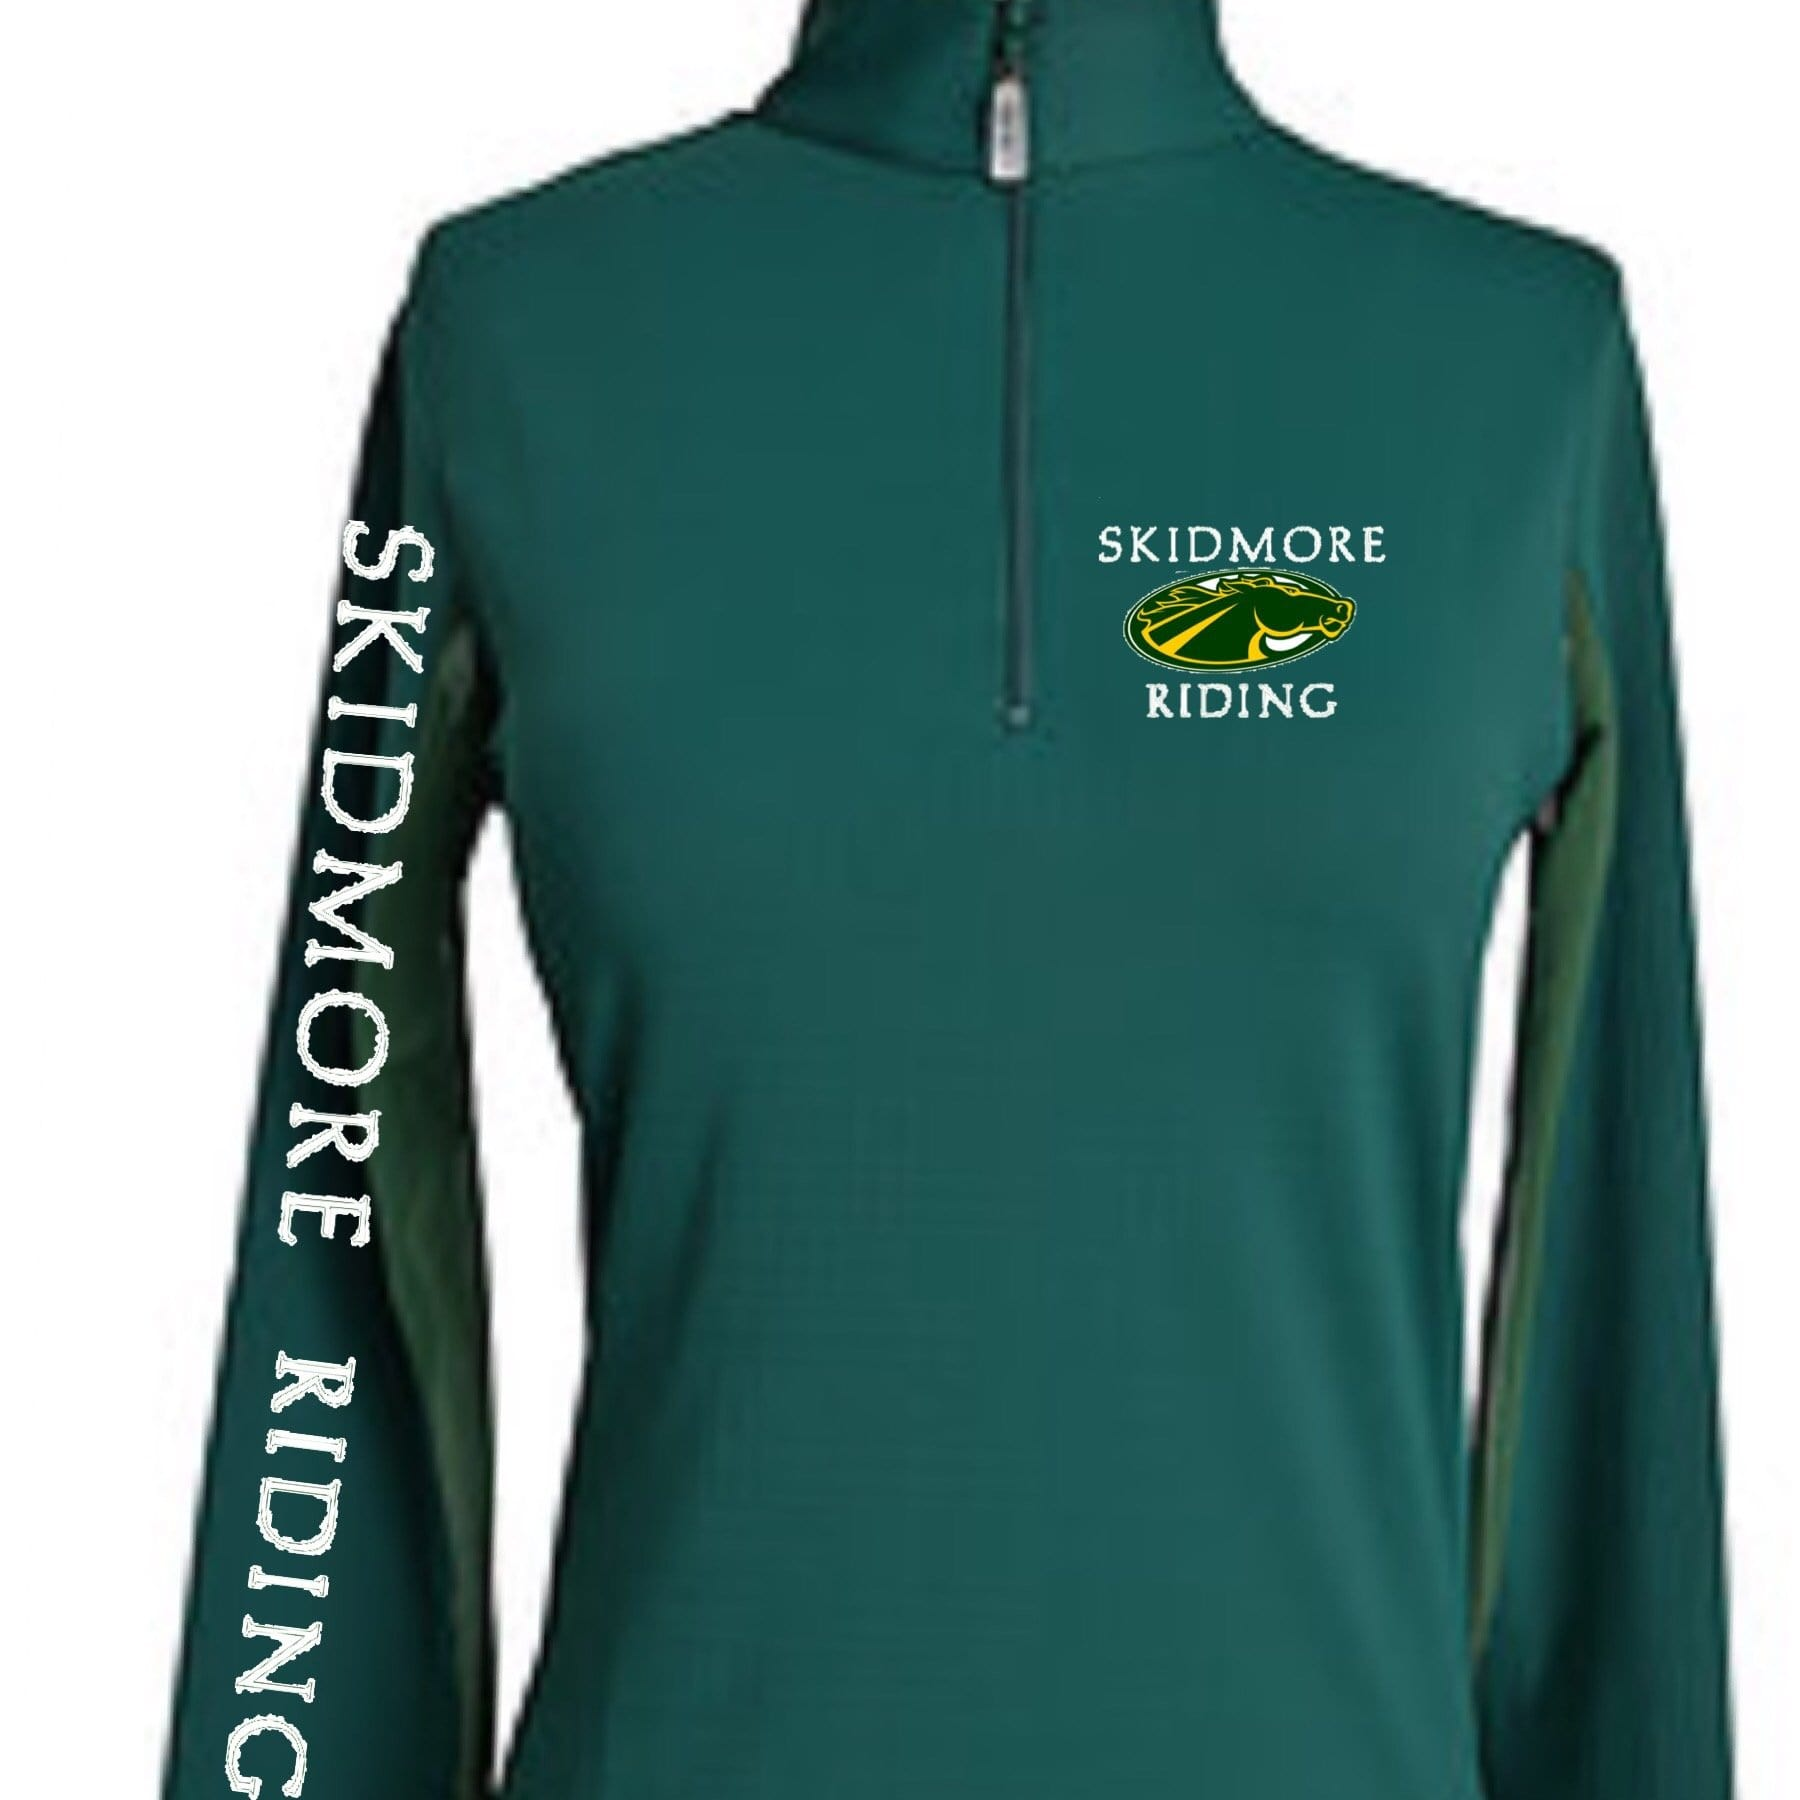 Equestrian Team Apparel Custom Team Shirts XS Skidmore College equestrian team apparel online tack store mobile tack store custom farm apparel custom show stable clothing equestrian lifestyle horse show clothing riding clothes horses equestrian tack store